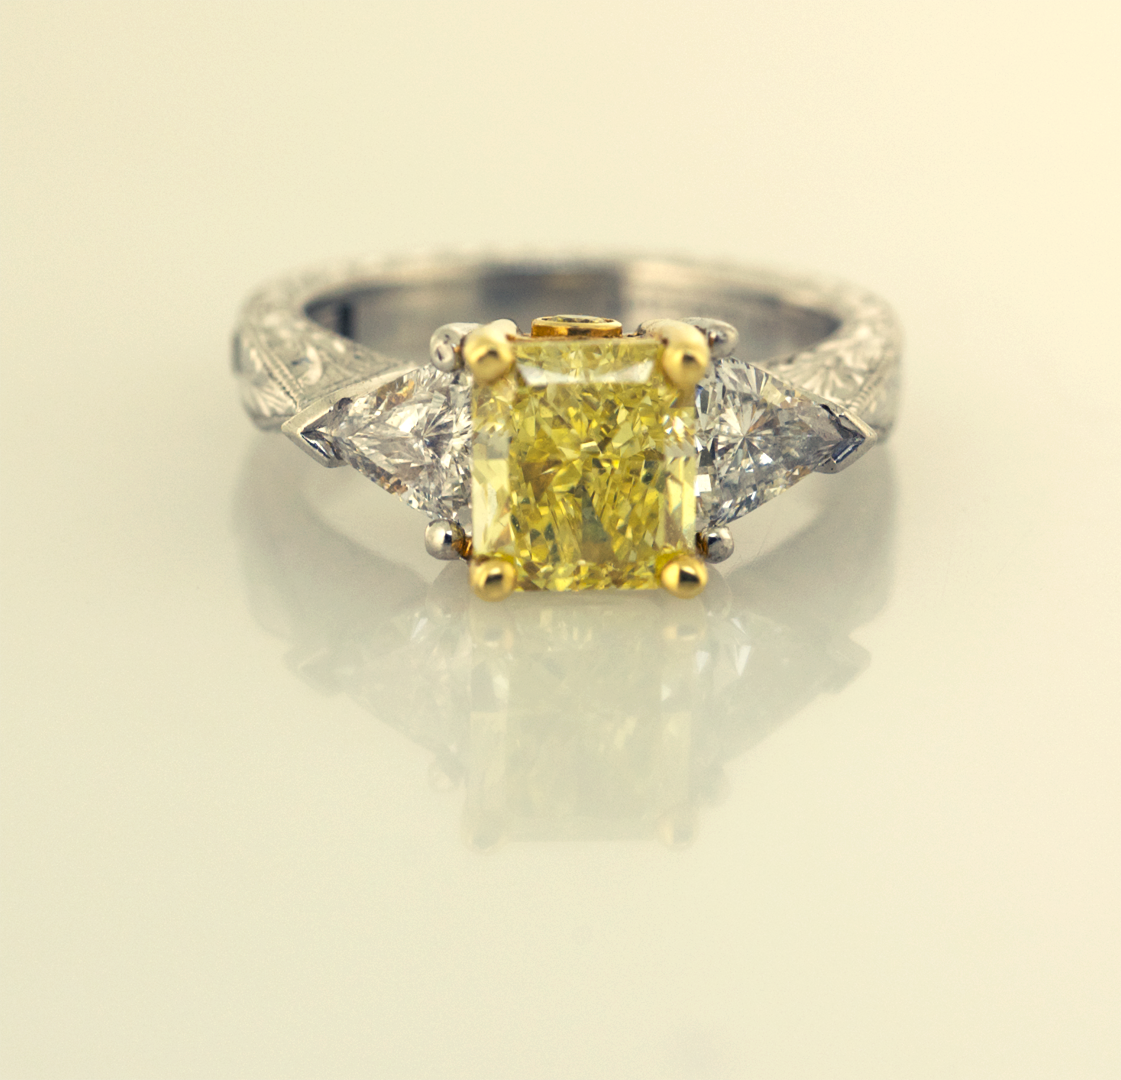 Fancy intense  yellow radiant cut diamond set with 2 trillians in Plat & 18KT